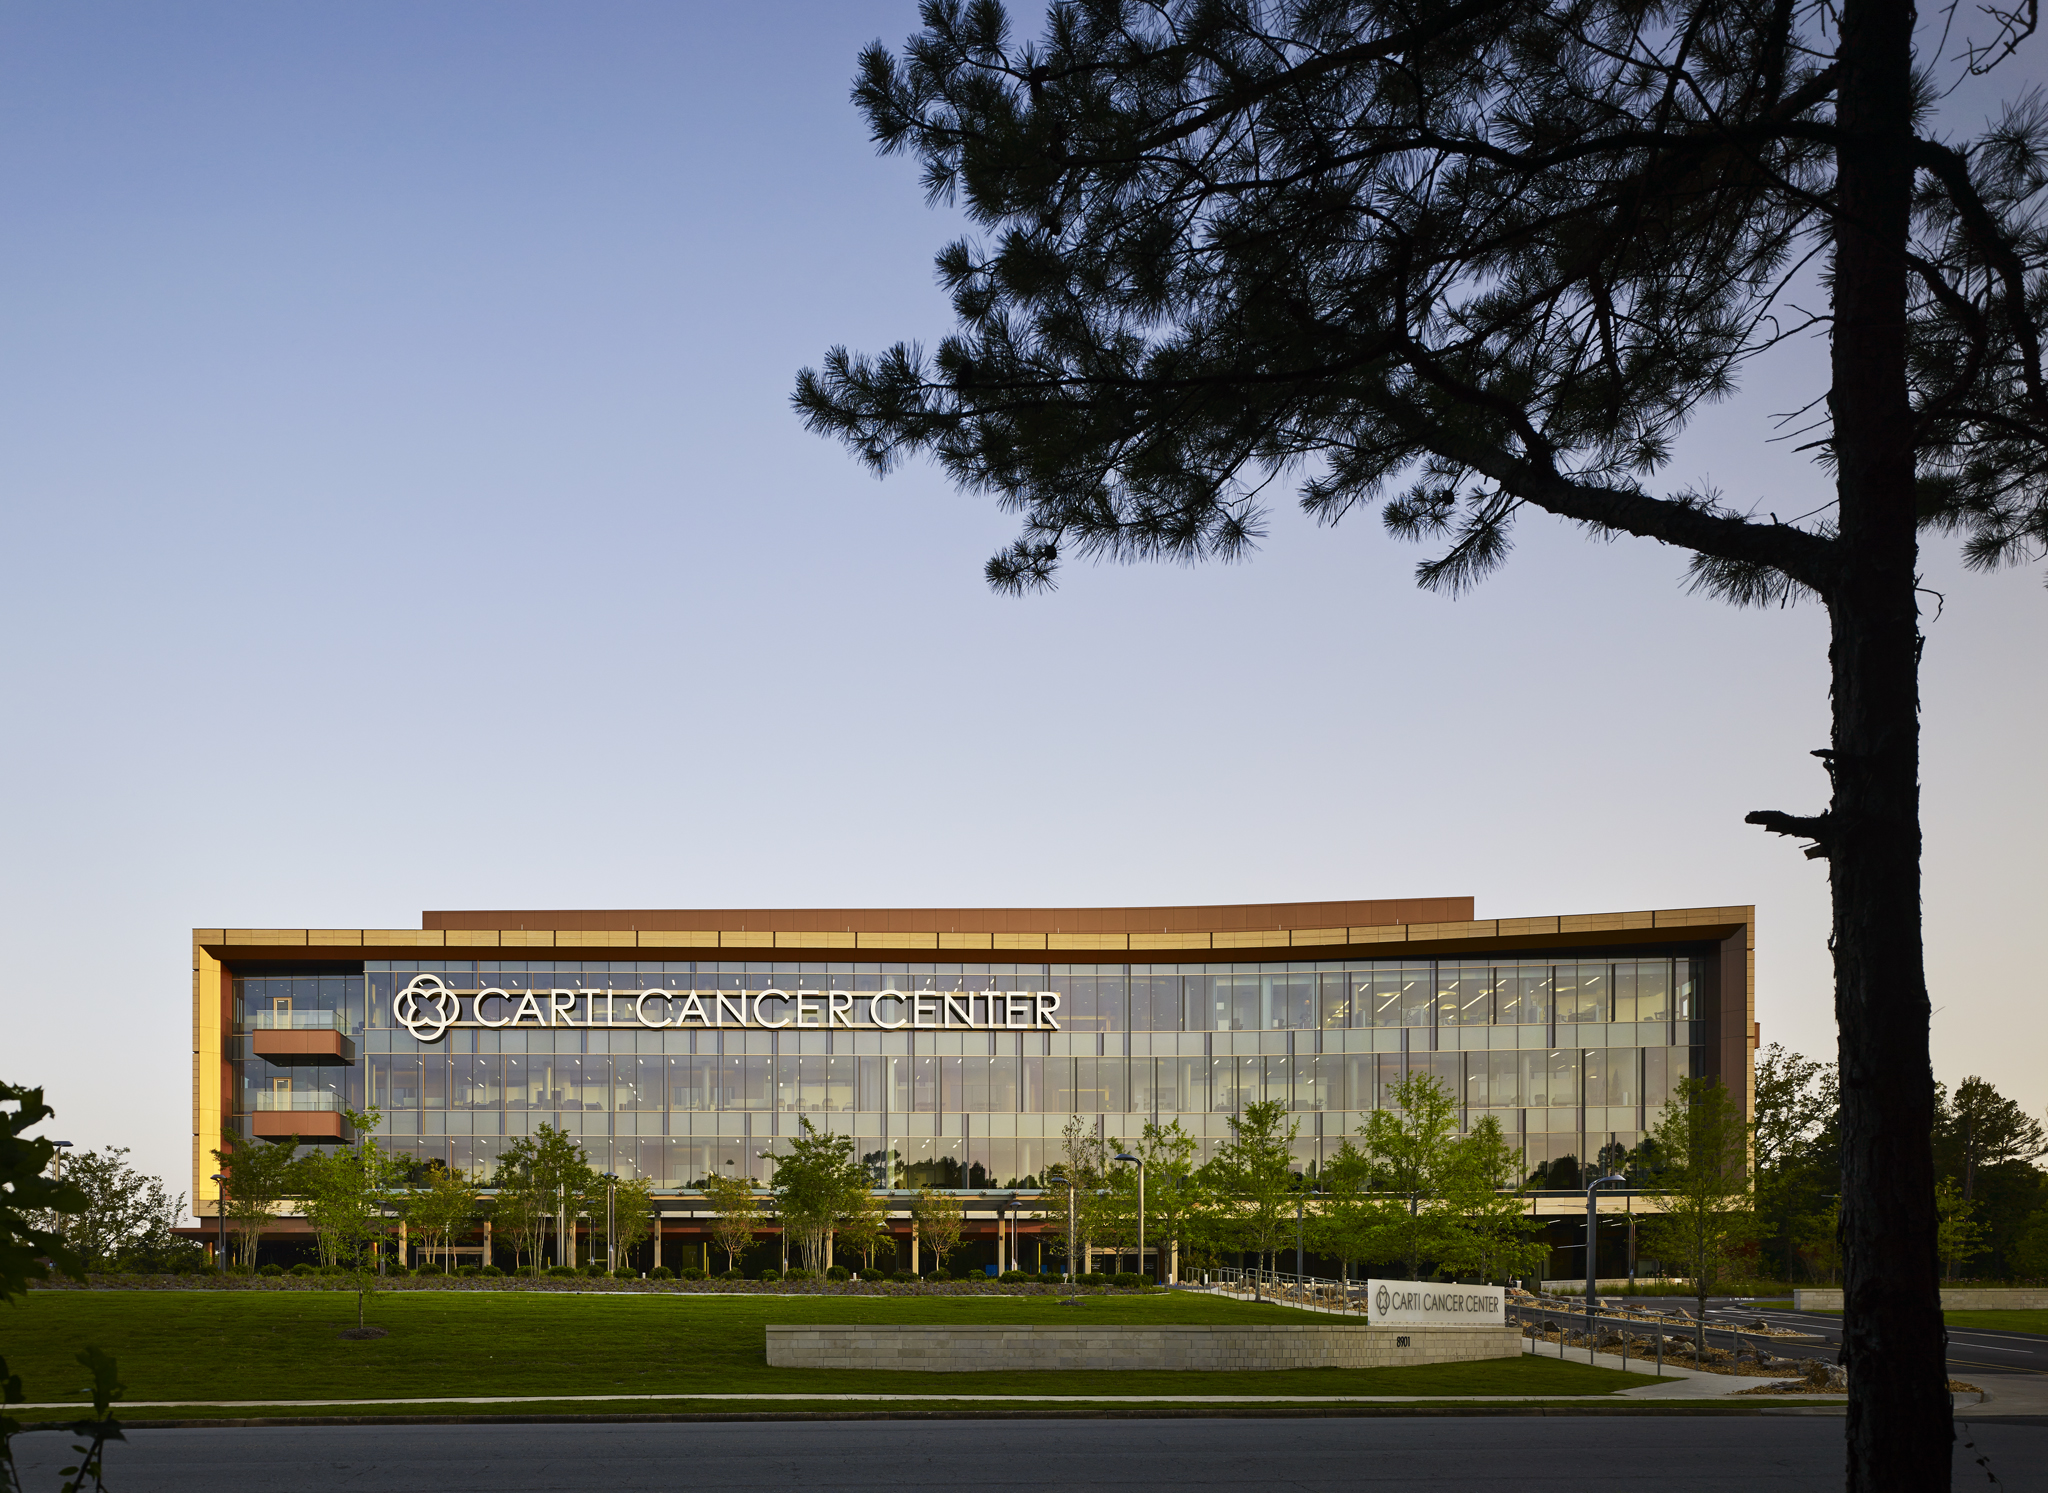 AWARDS  AIA Georgia 2017 Peoples Choice Award     CARTI Cancer Center  Perkins+Will  Little Rock, Arkansas      Return to Projects